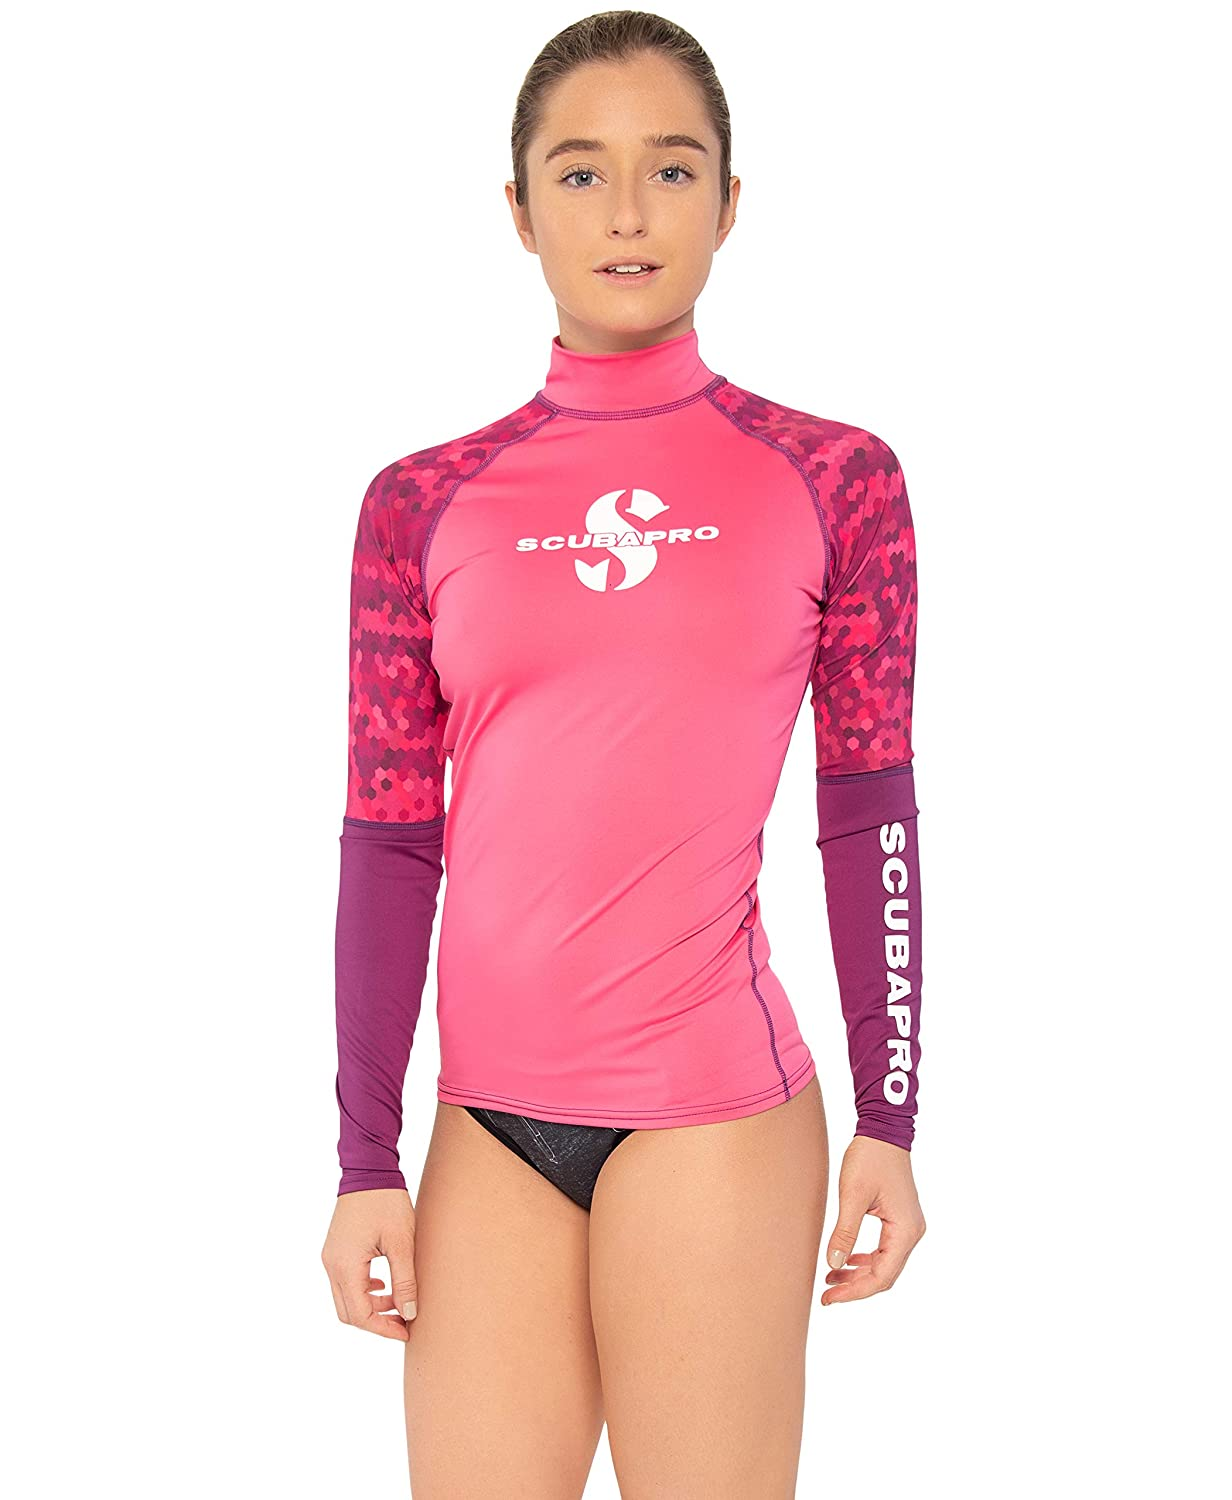 Choose Your Style Scubapro Collection Womens UV Sun Protection Rash Guard Lycra Skin